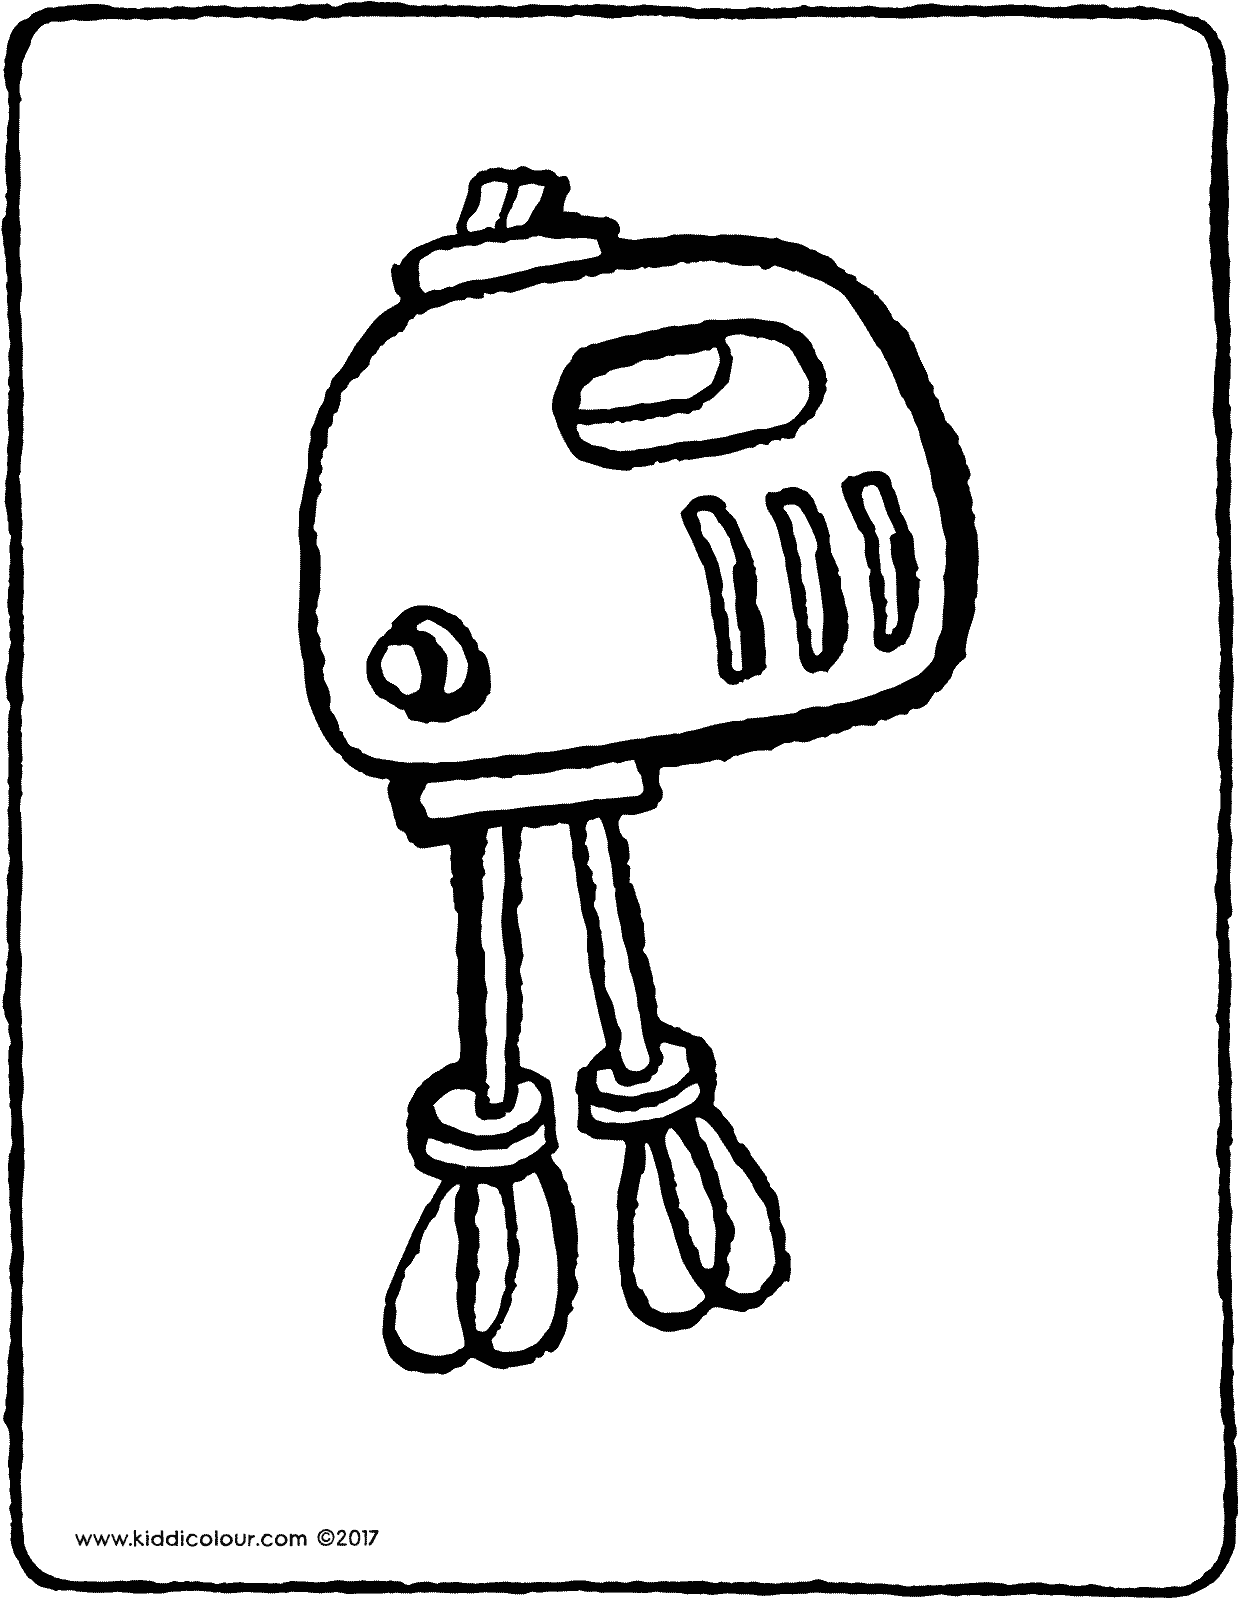 mixer colouring page drawing picture 01V